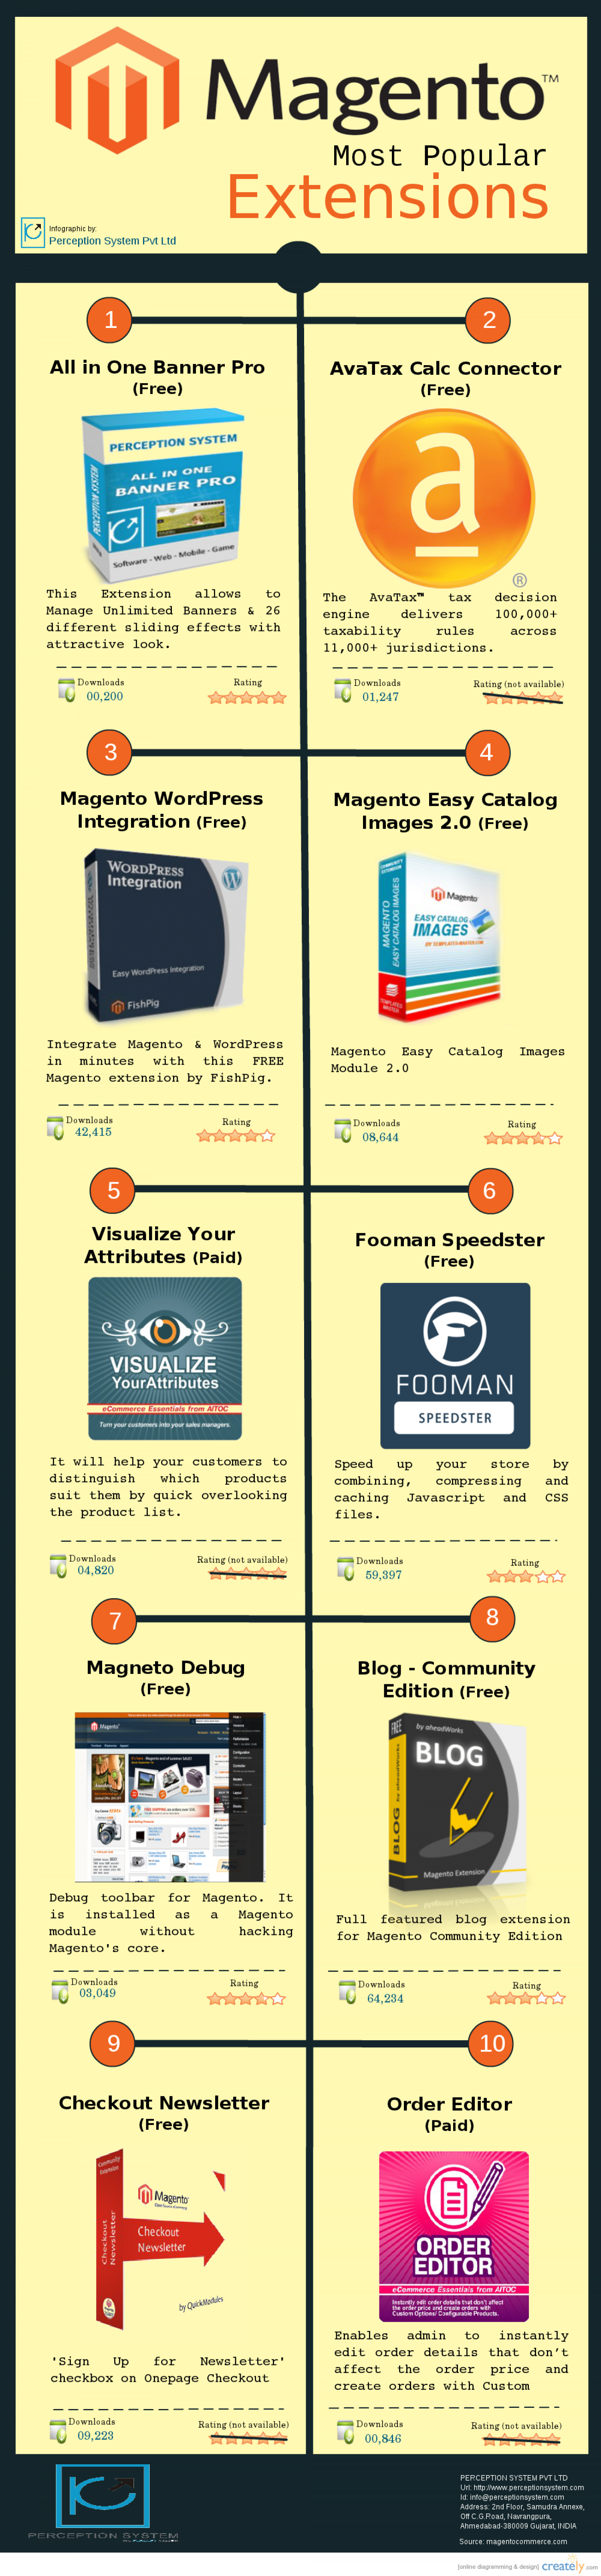 Ecommerce Magento Extensions Infographic